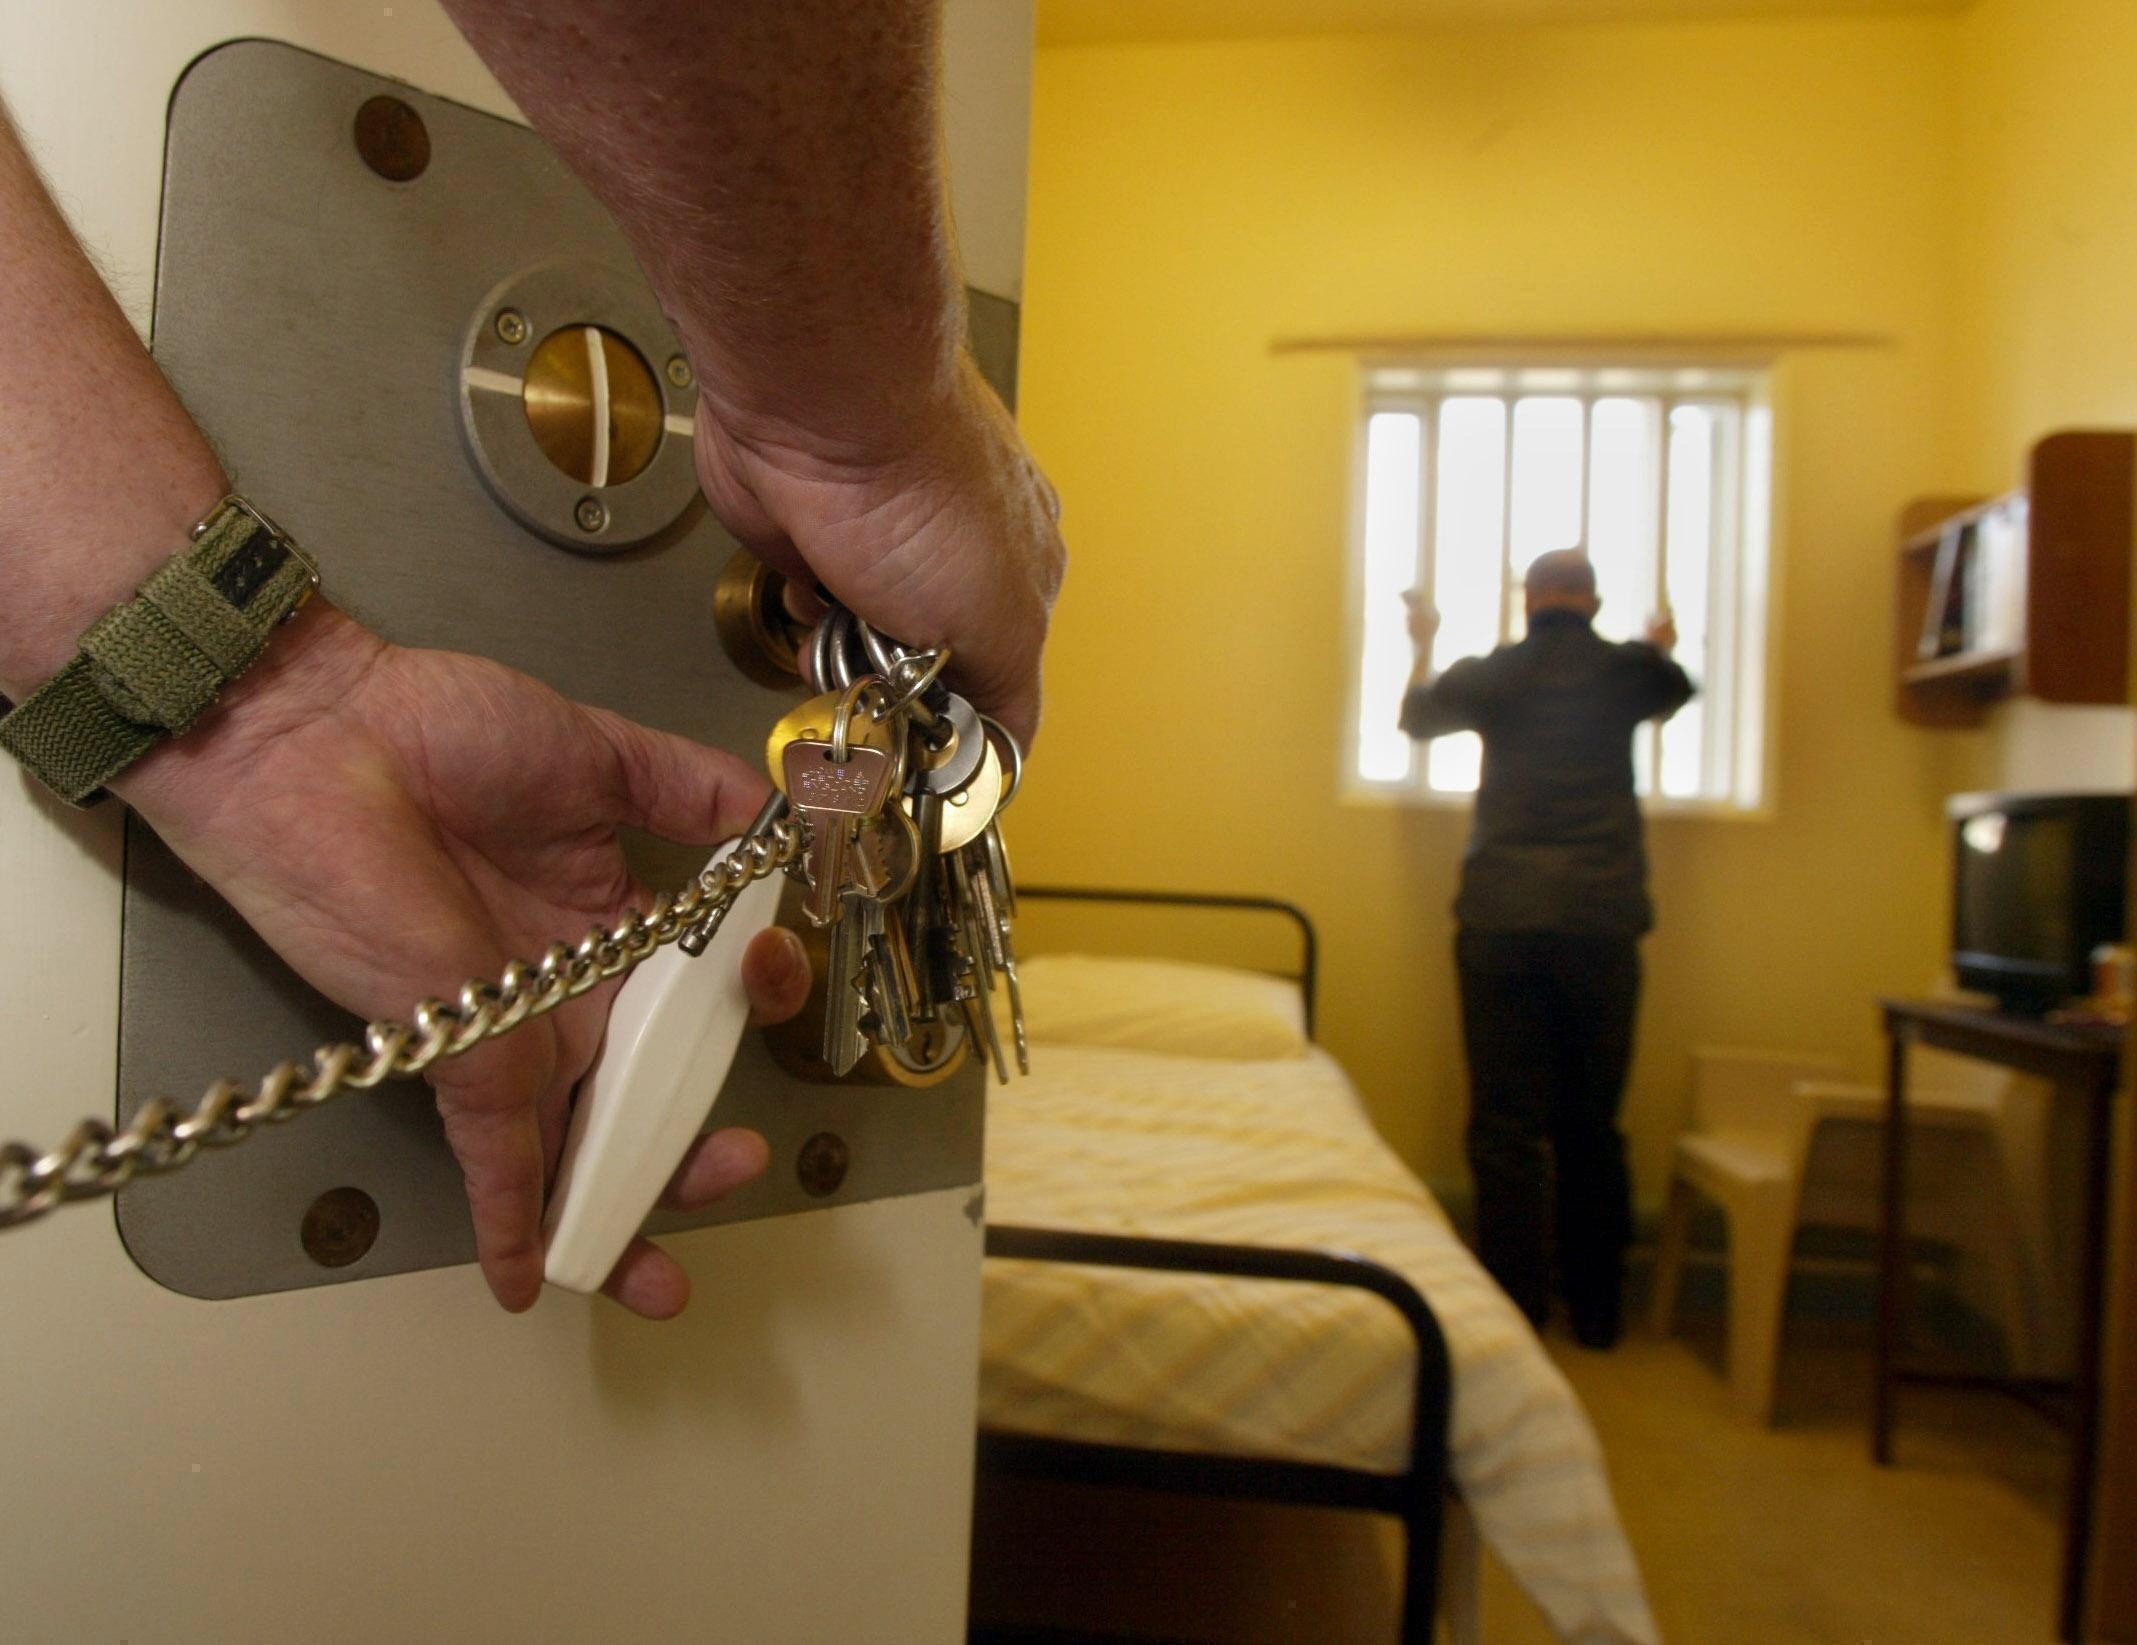 A 'ground-breaking' new scheme aims to stop vulnerable women reoffending